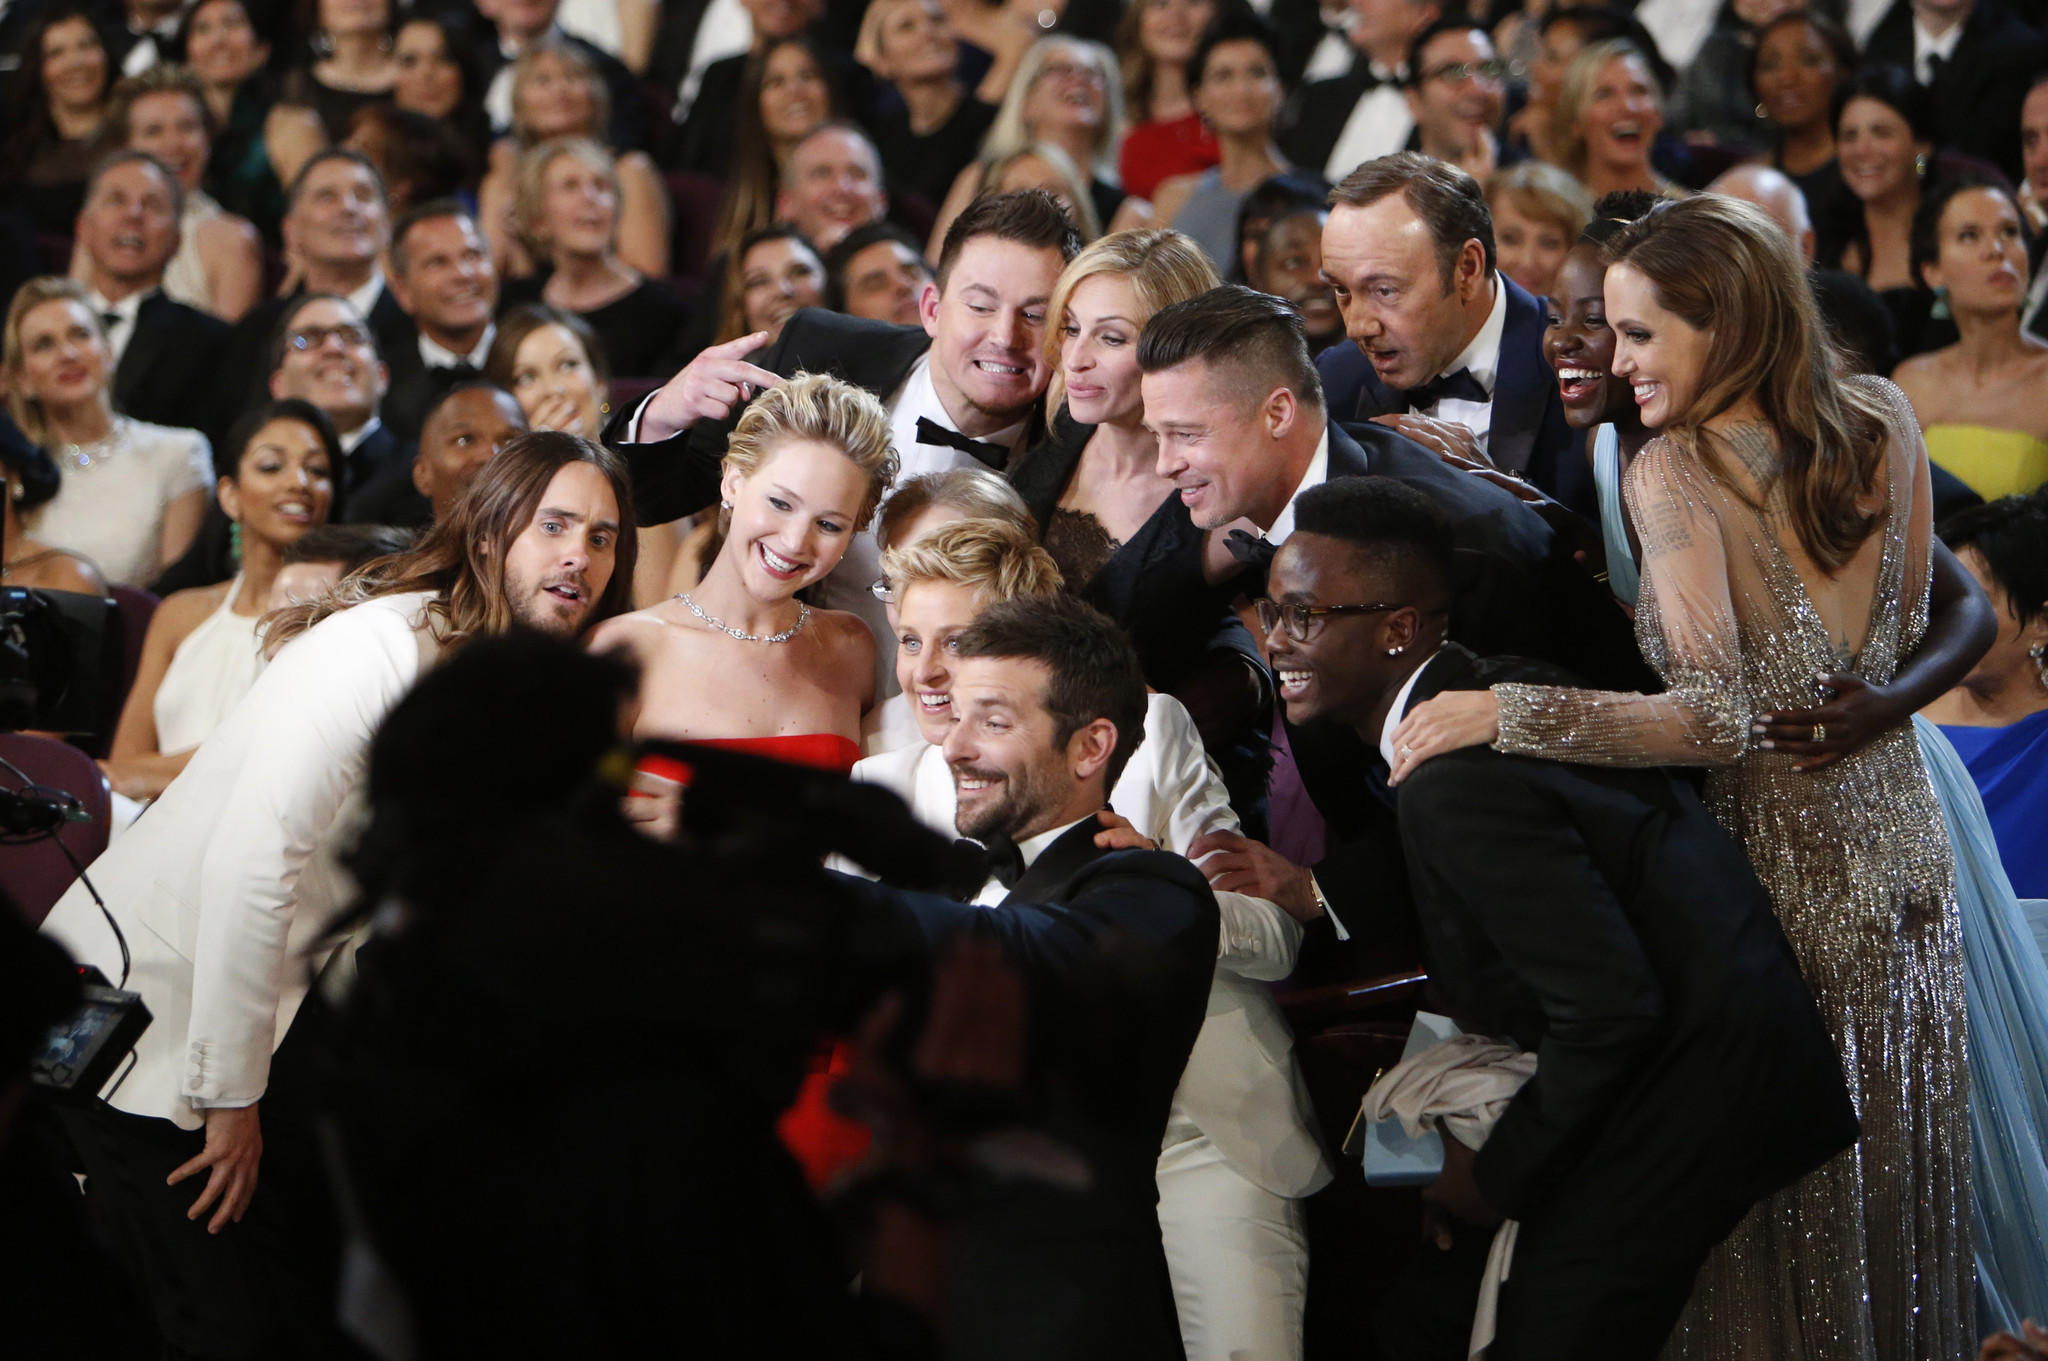 Ellen DeGeneres' selfie with friends at the Oscars took down Twitter.